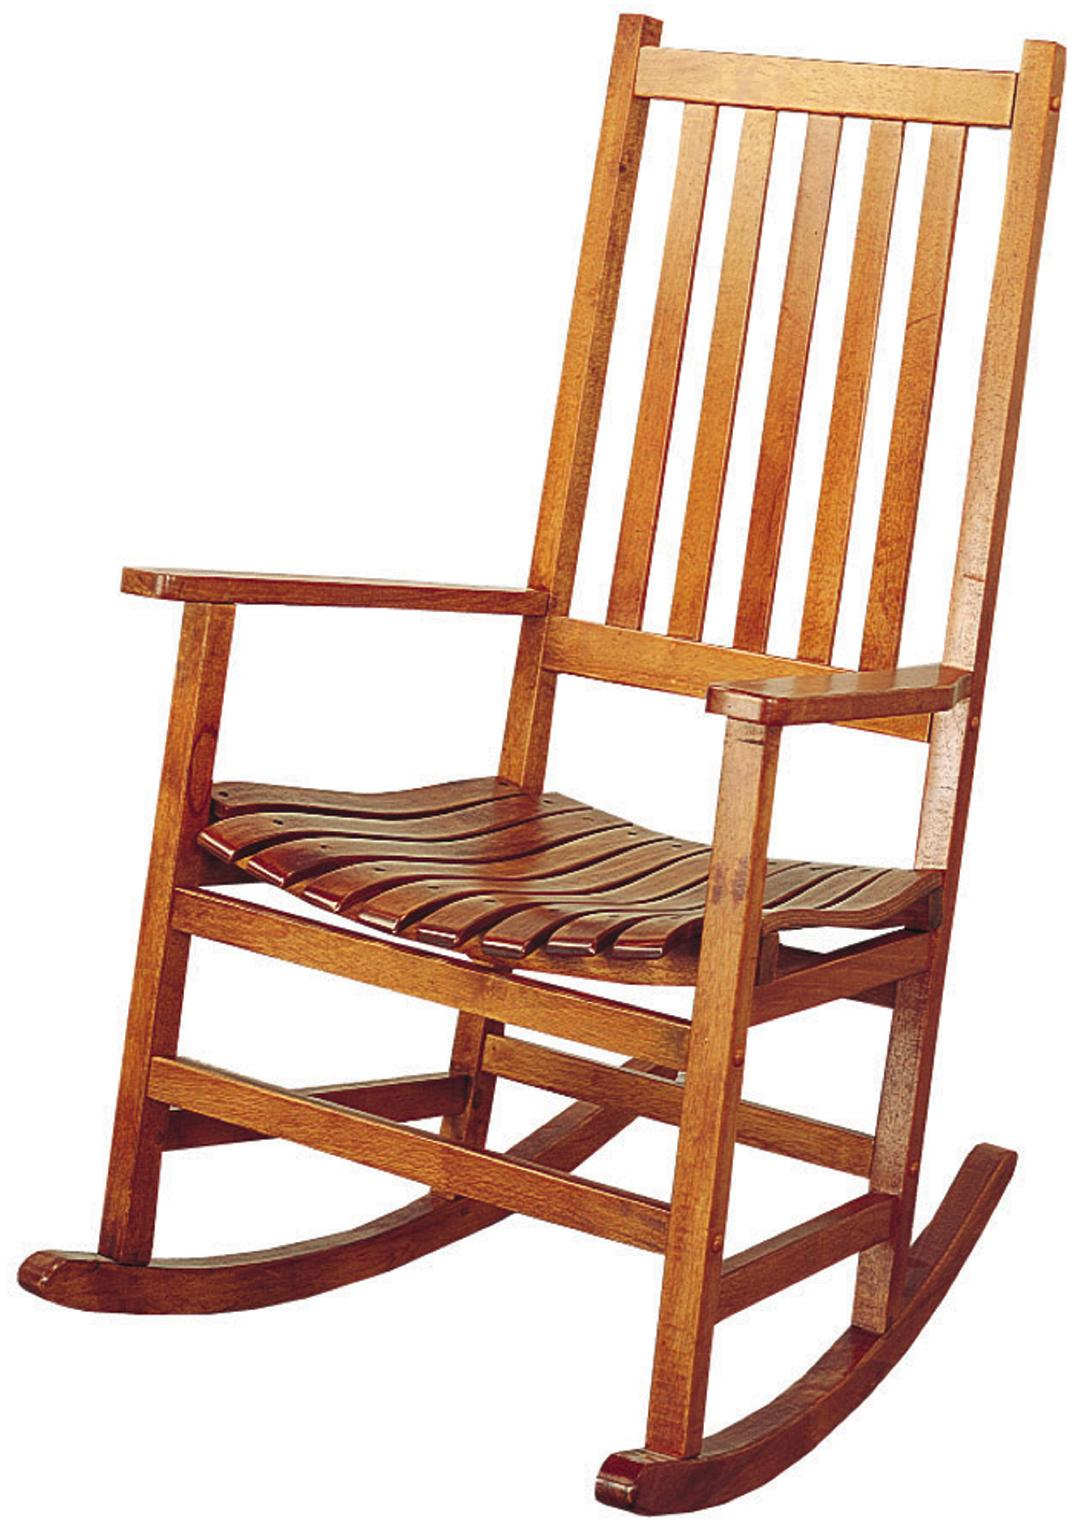 Rocky Chair Free Rocking Chair Cliparts Download Free Clip Art Free